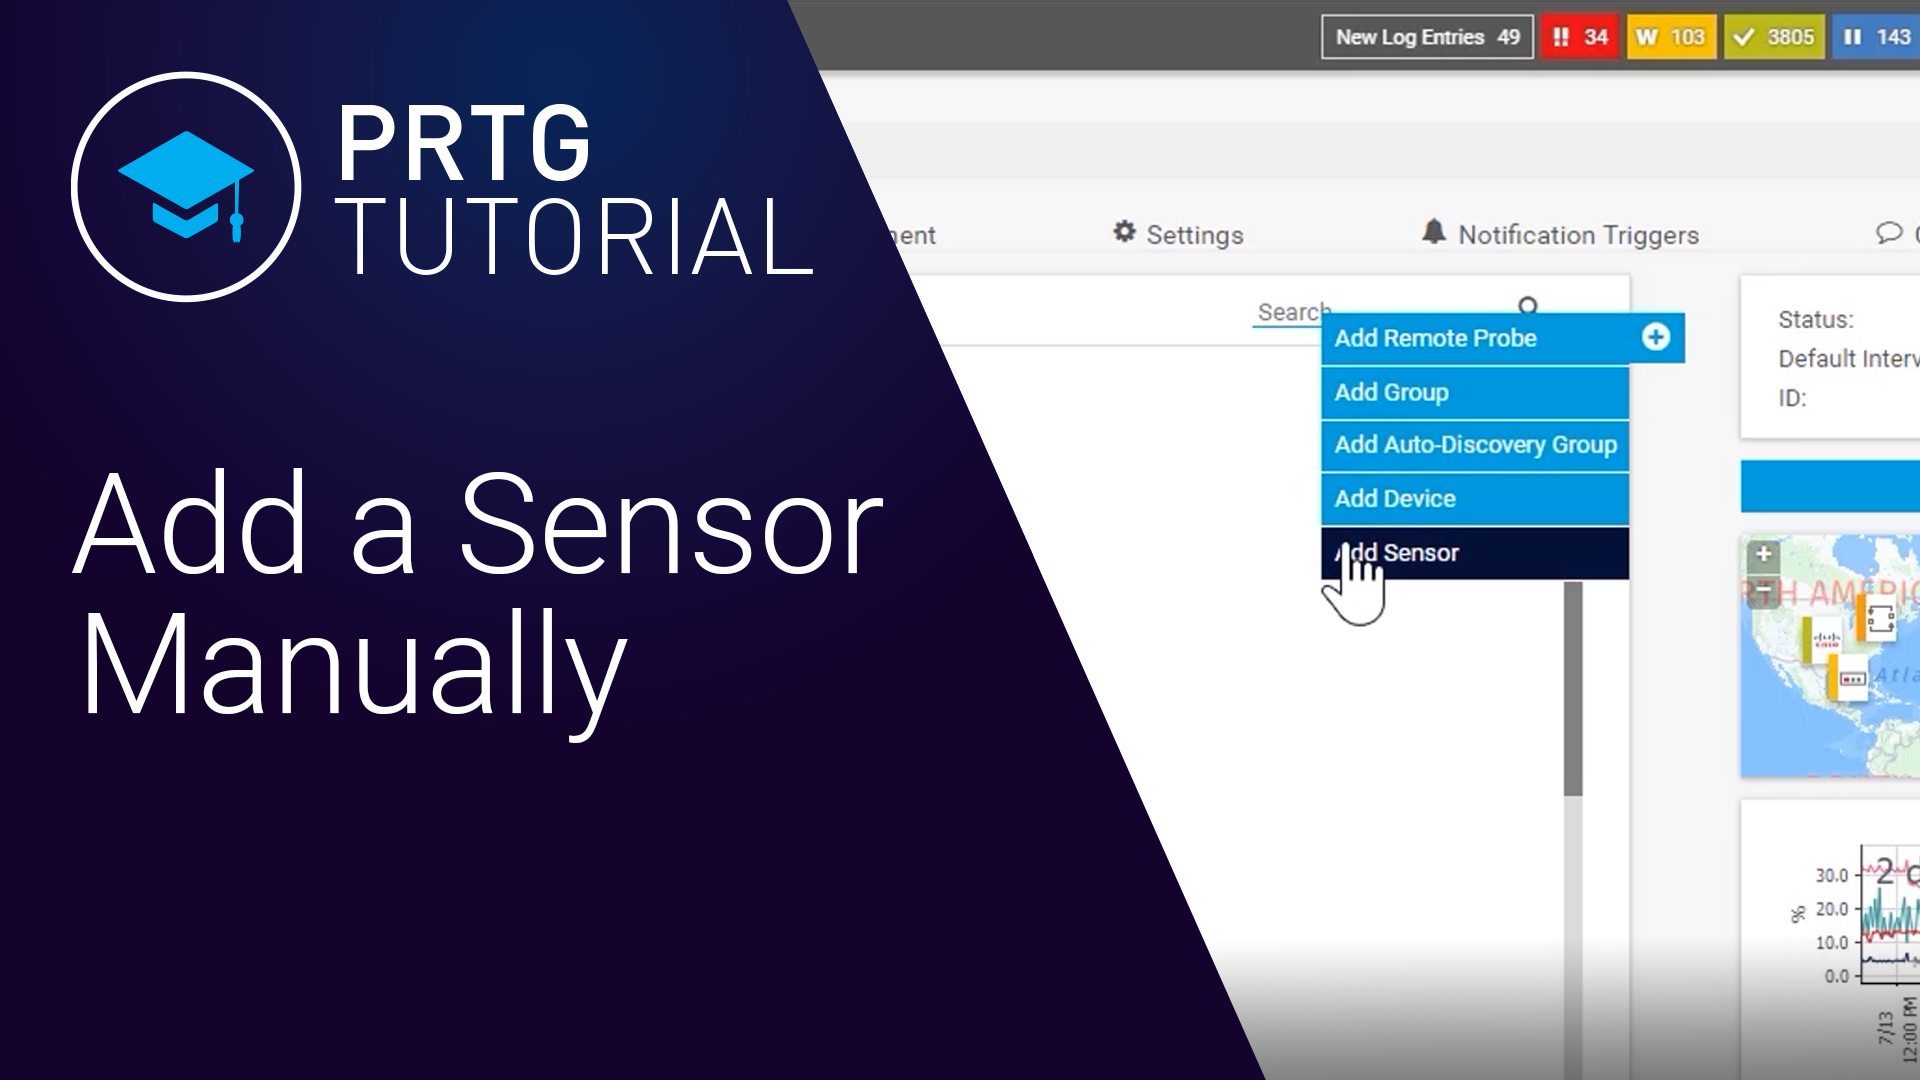 How to Add a Sensor Manually in PRTG (Videos, Sensors)